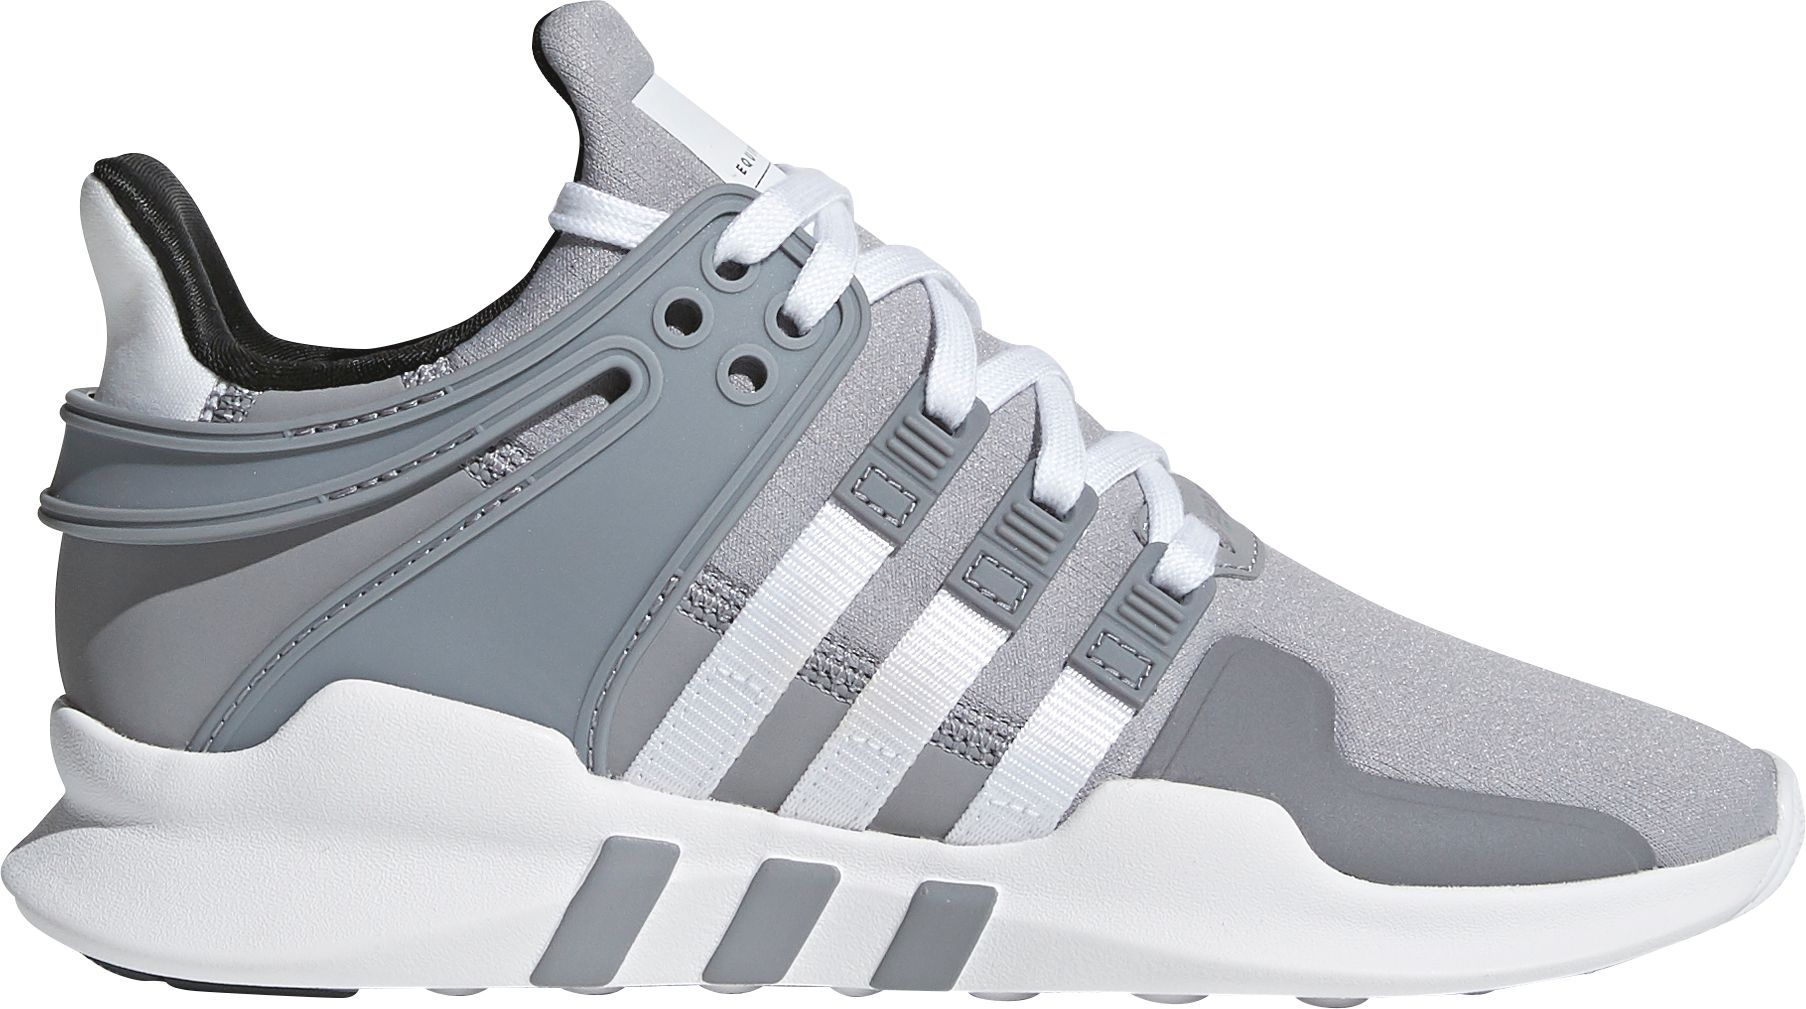 ADIDAS EQT SUPPORT ADV KIDS SNEAKERS   Sneakers, Kids